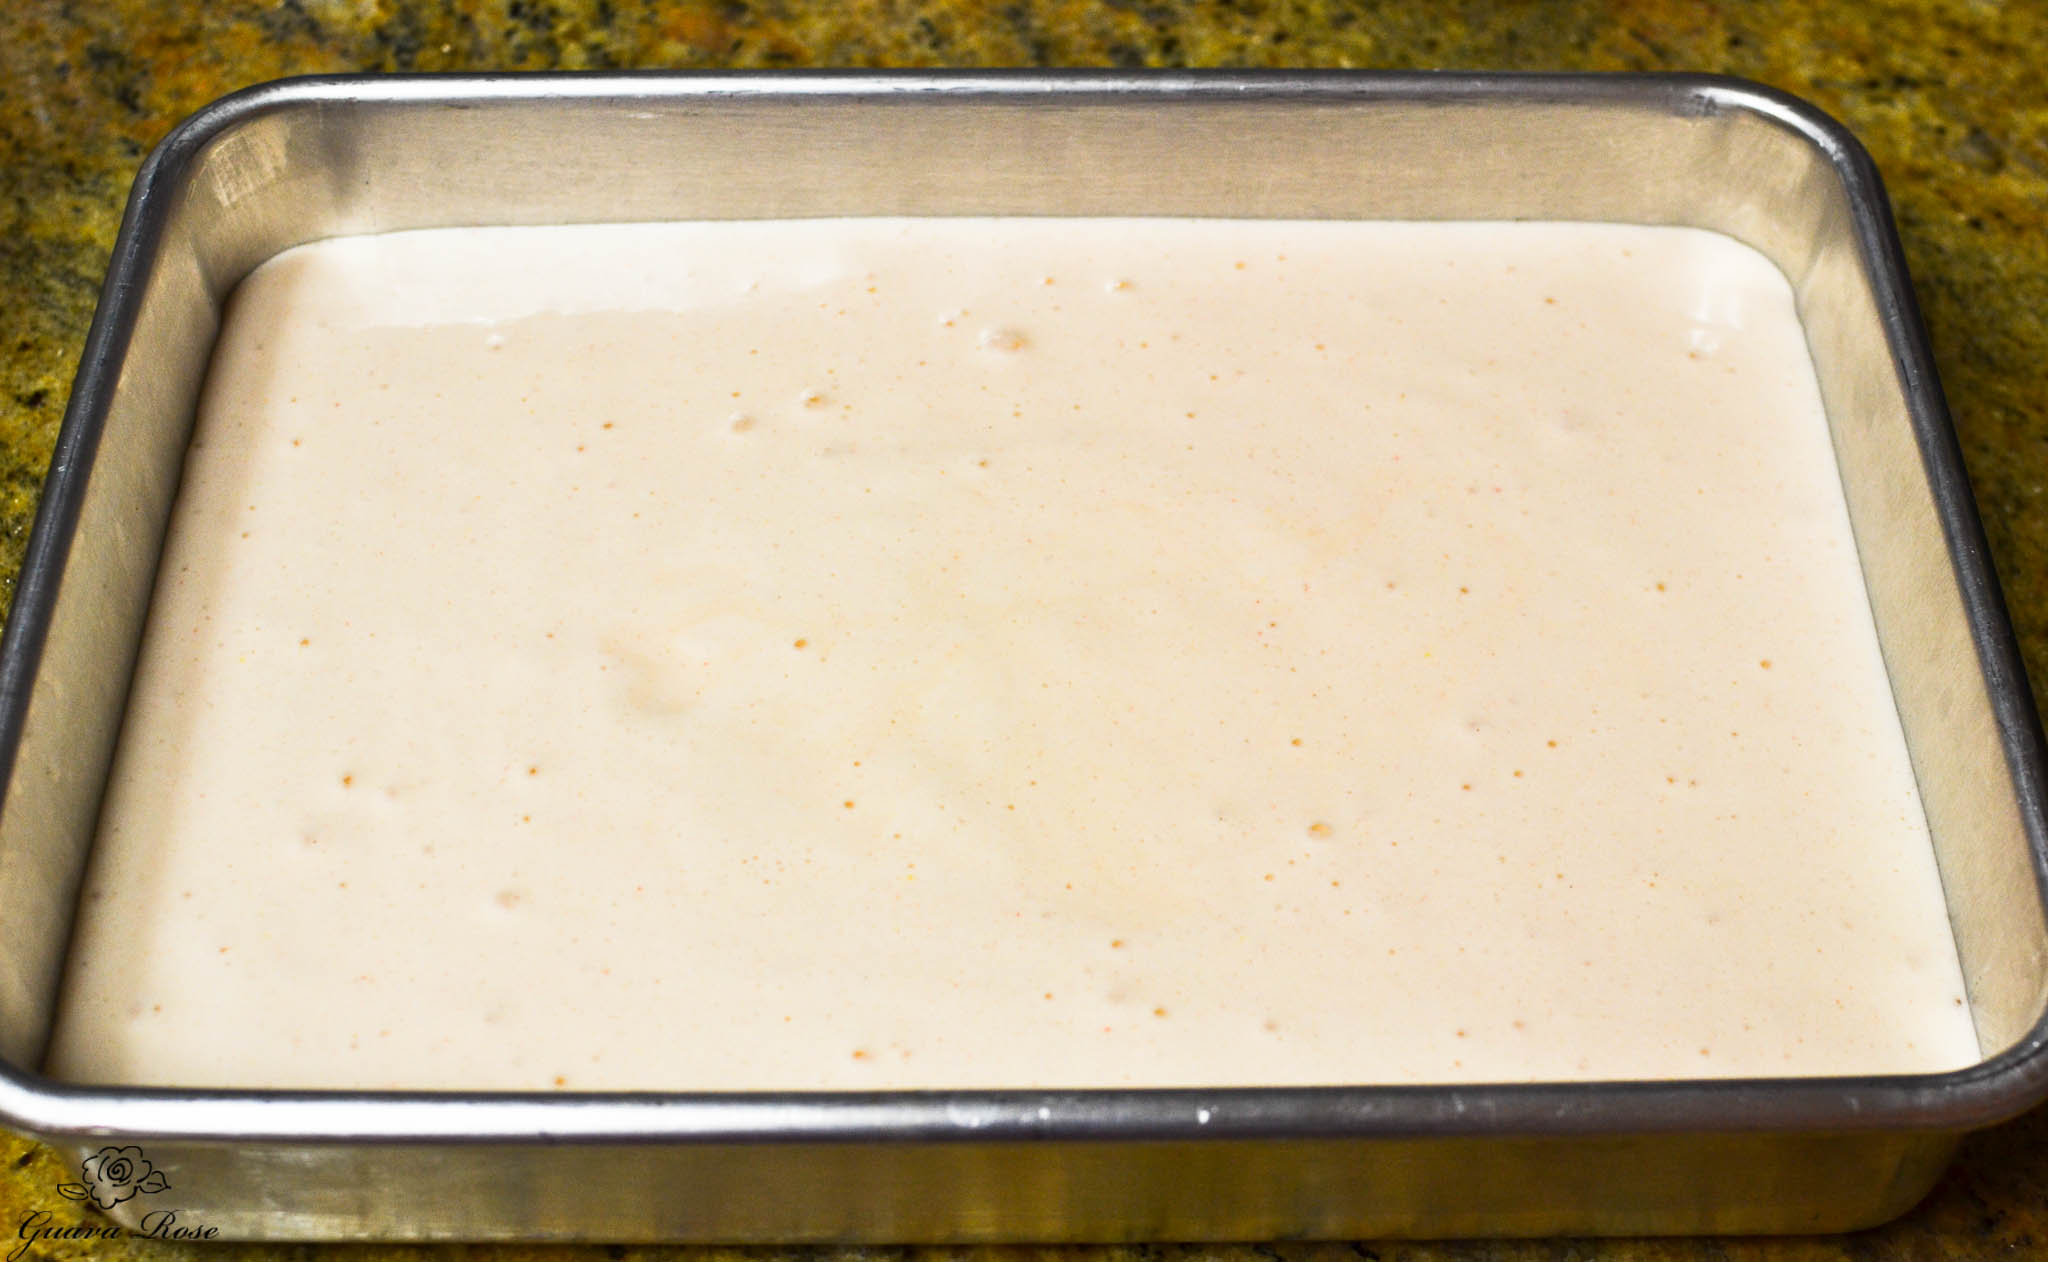 Chiffon Cake Batter in baking pan